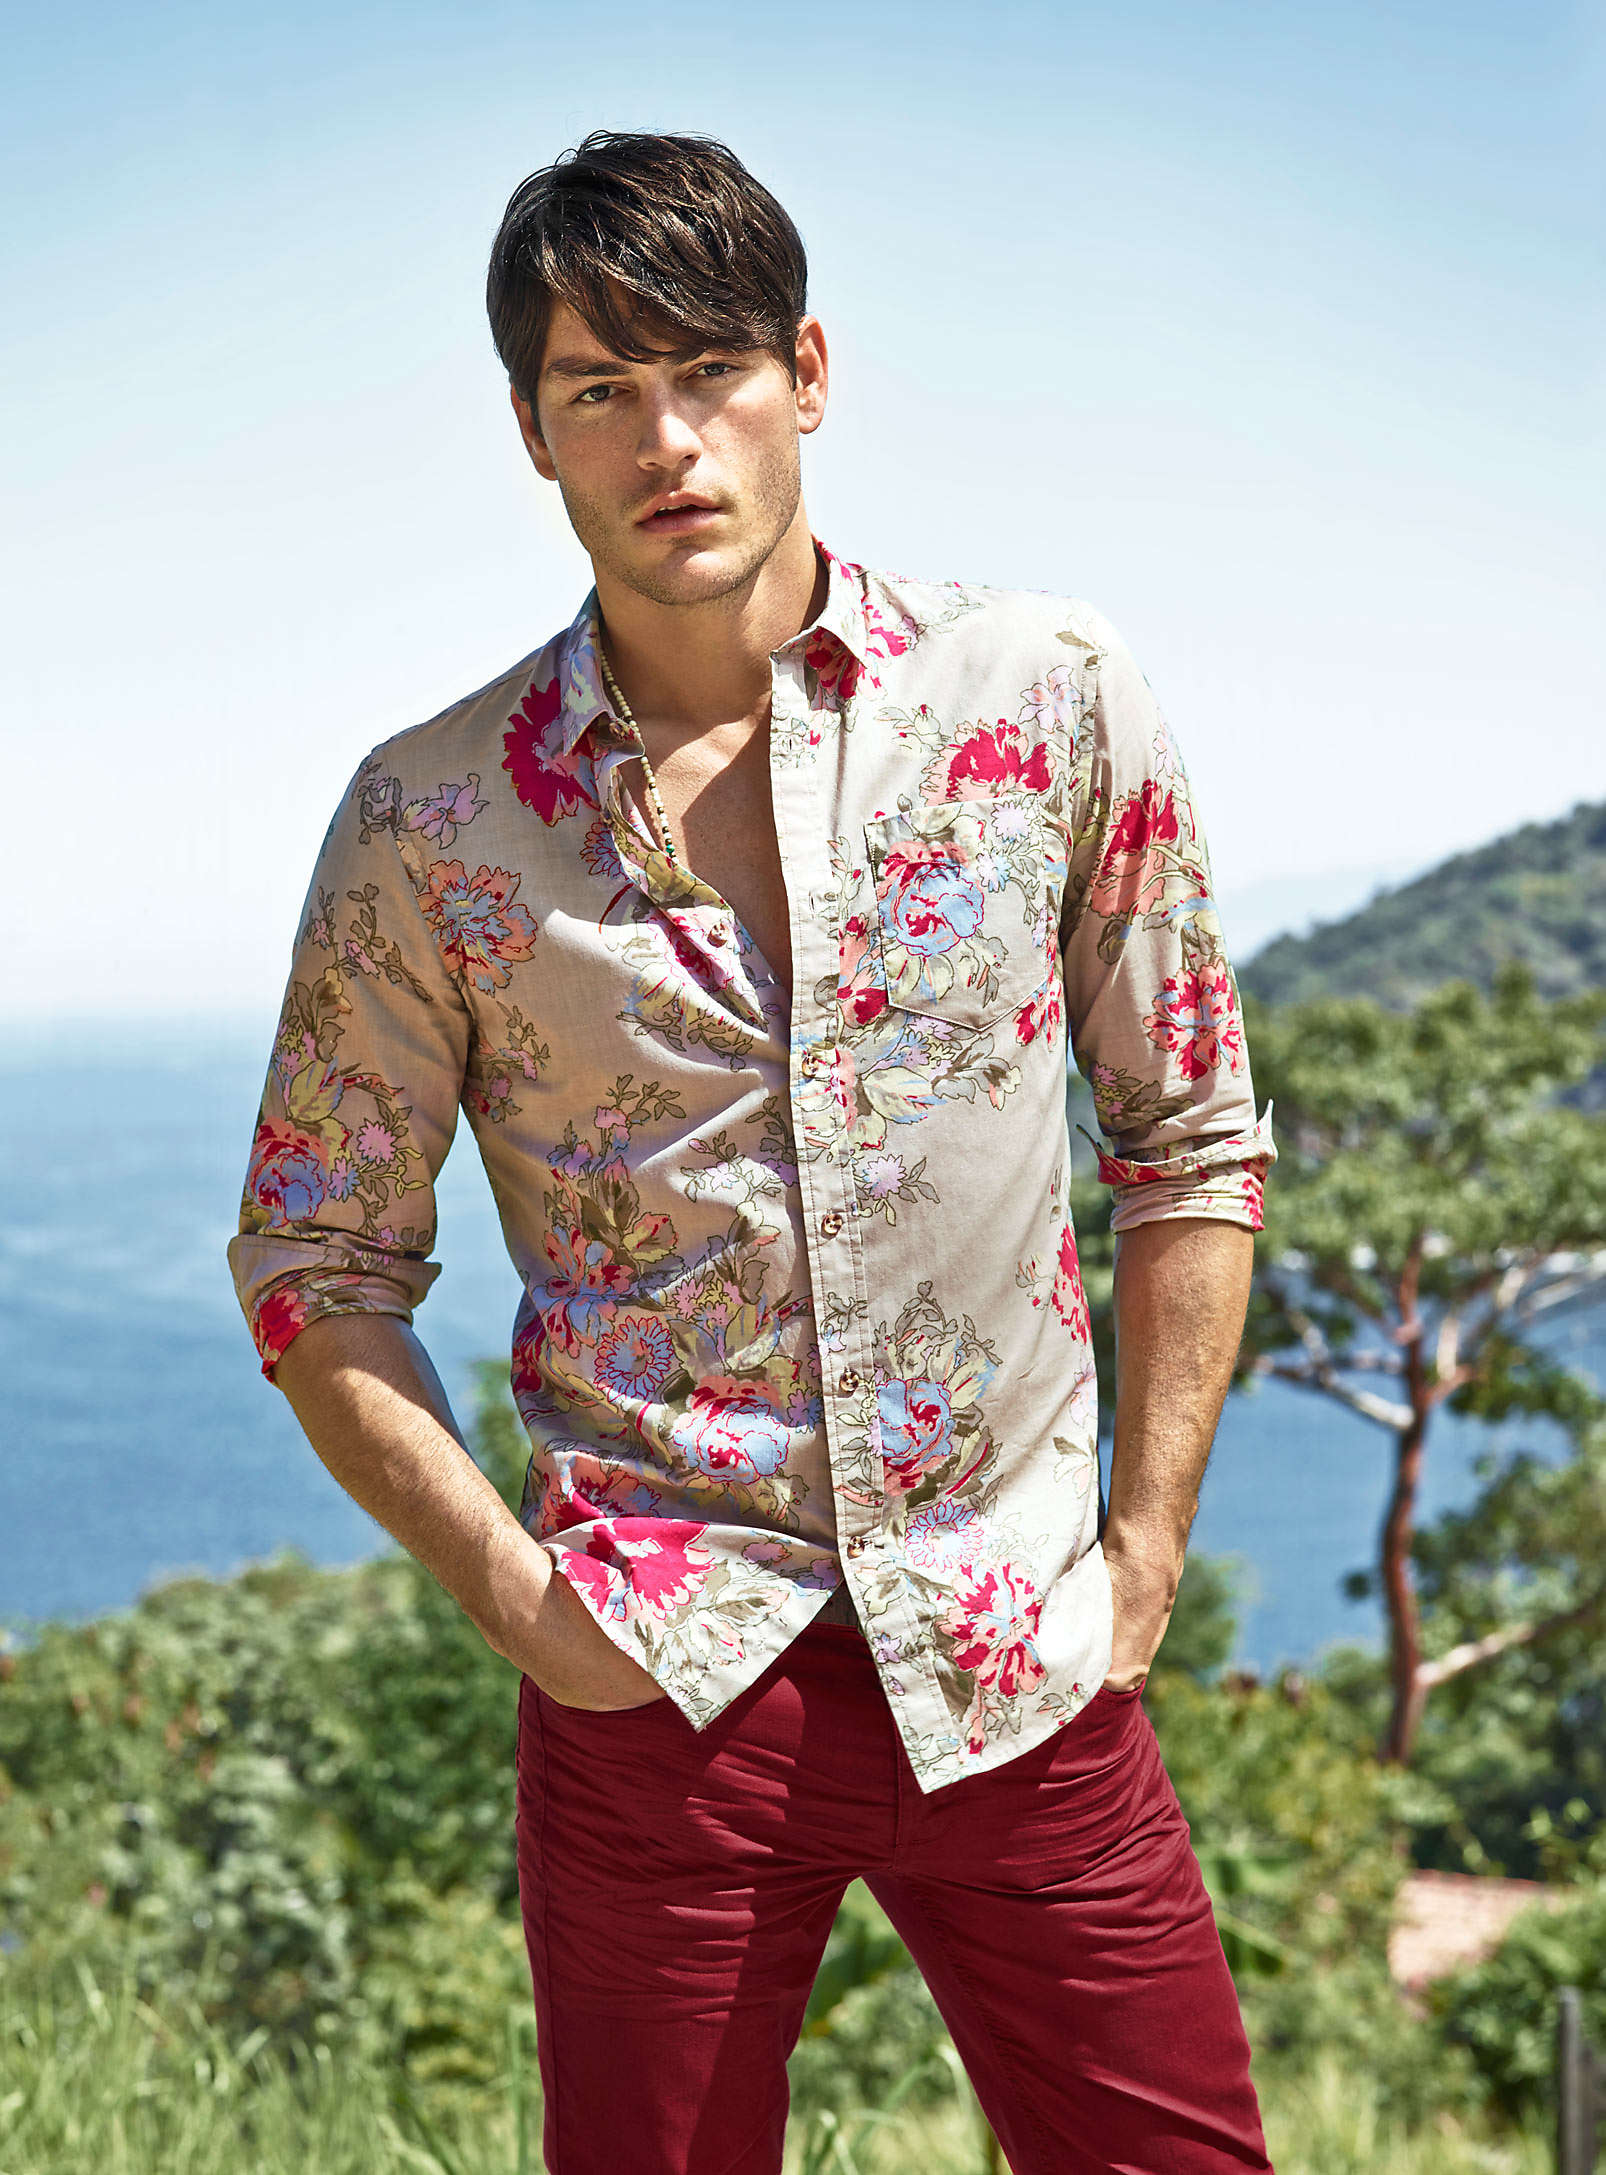 Tyson Ballou Models Simons' Summer 2013 Collection